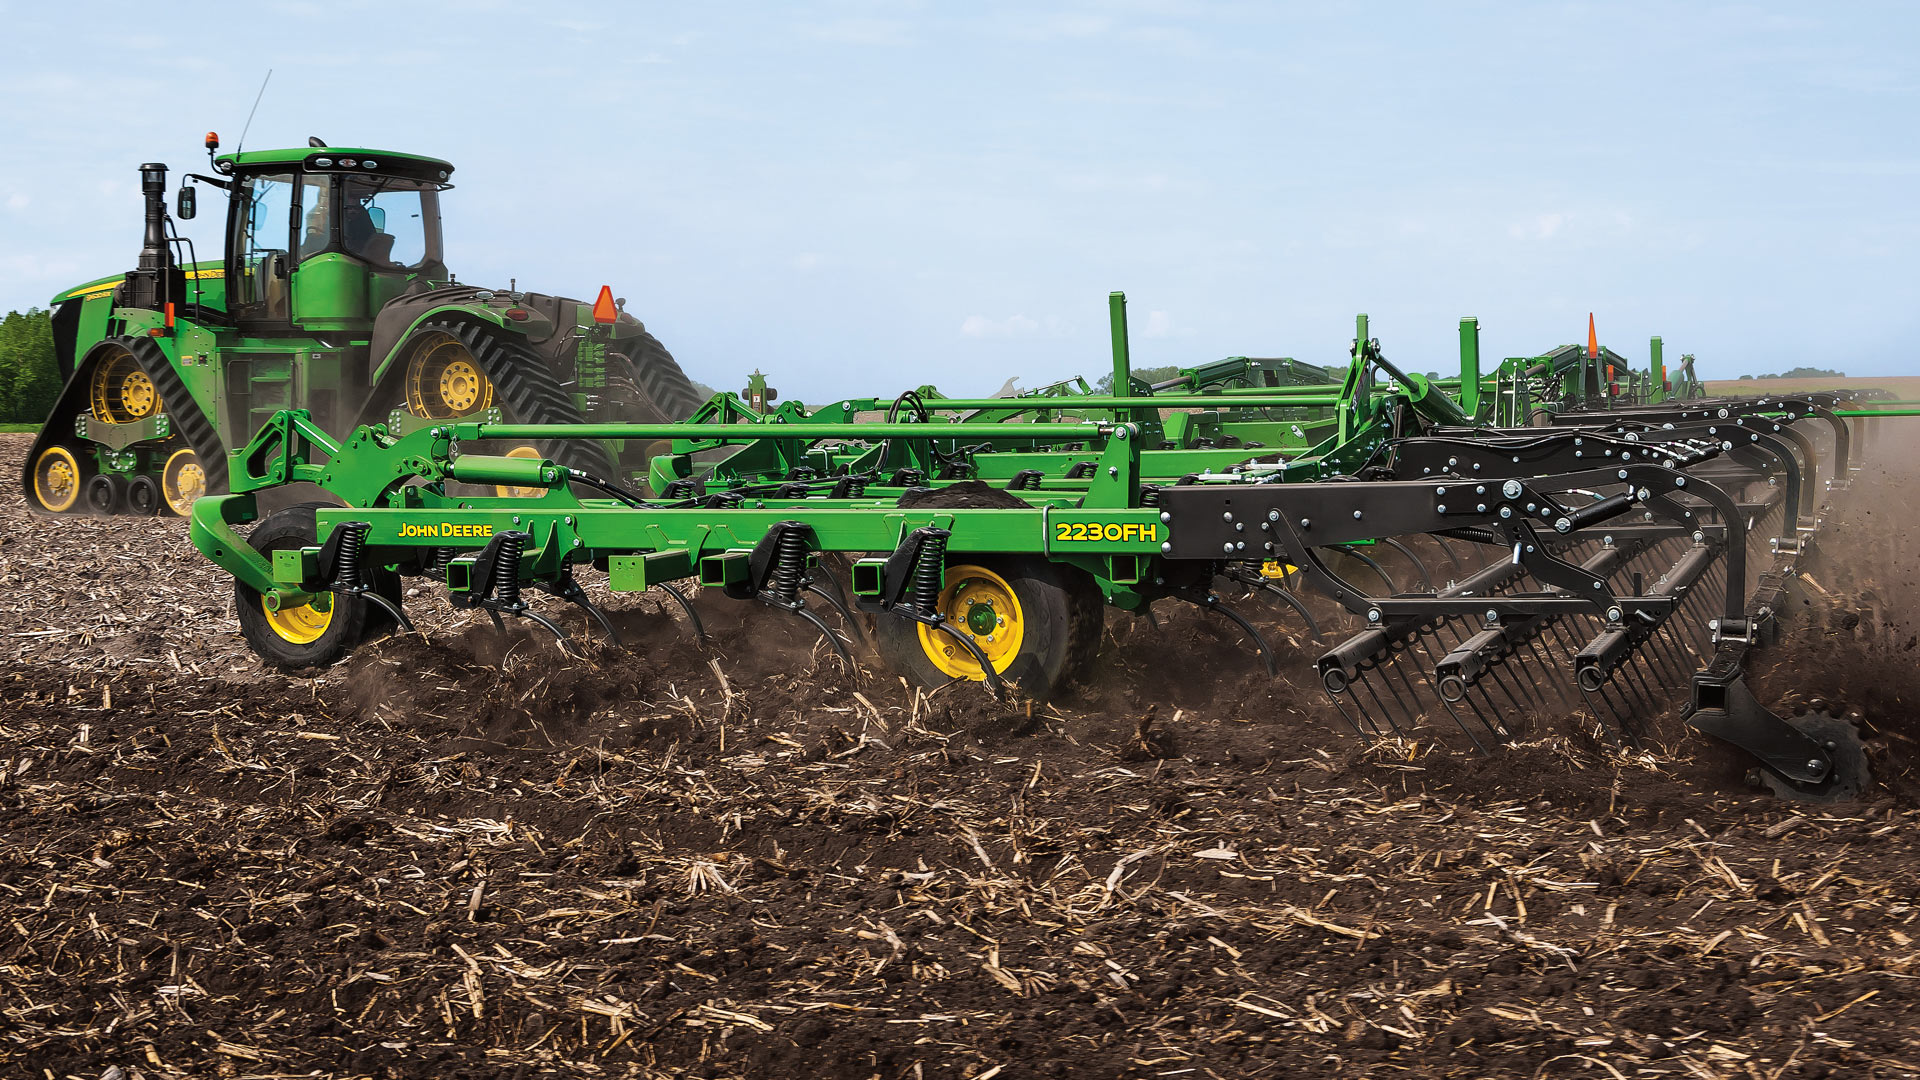 seedbed equipment moving through field